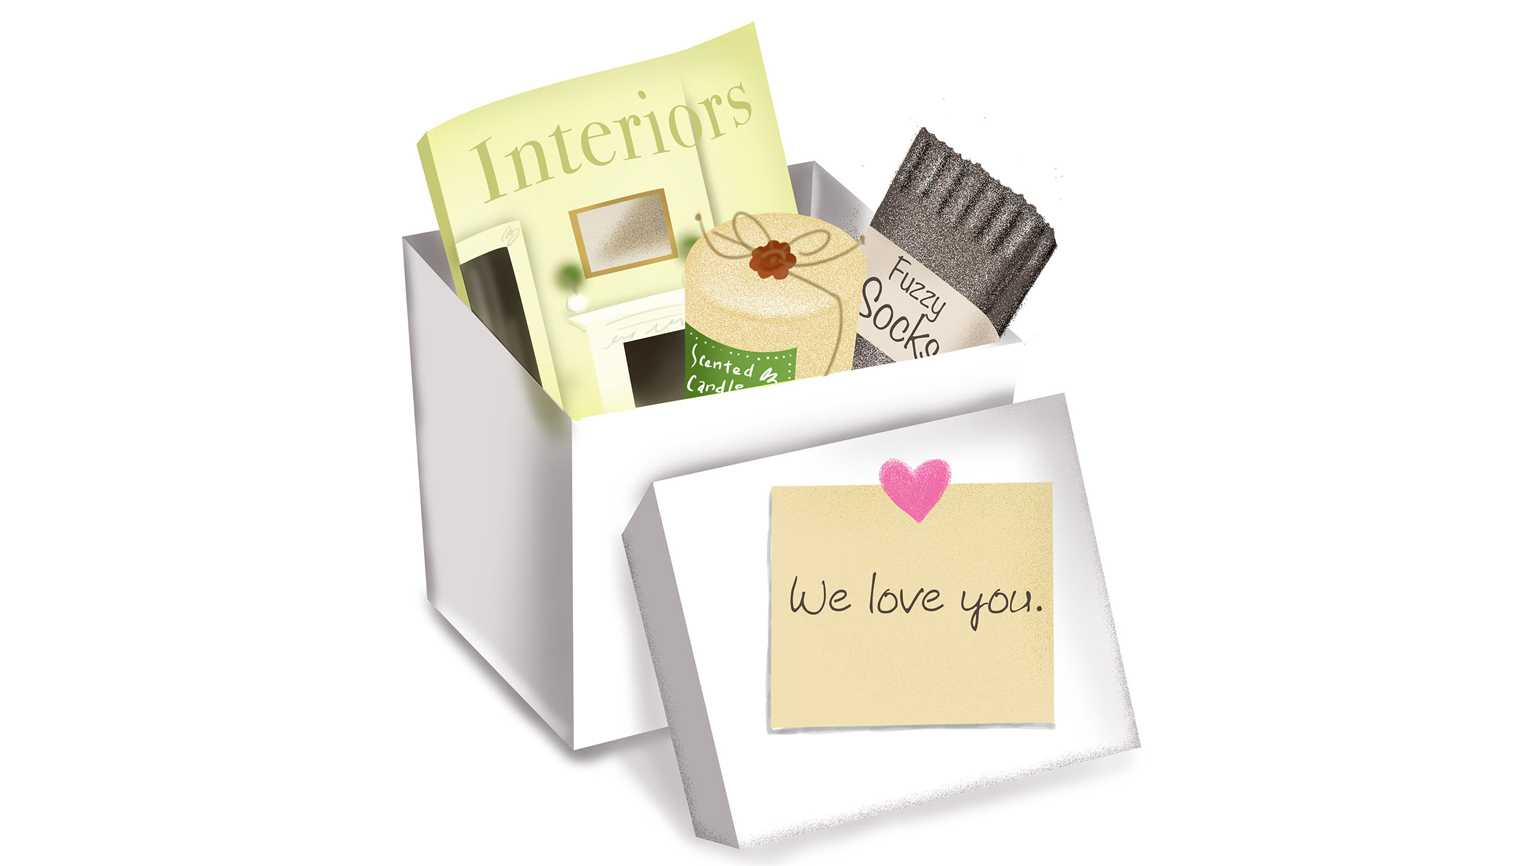 """A box full of care items and a note that says """"we love you"""" attached to the lid."""